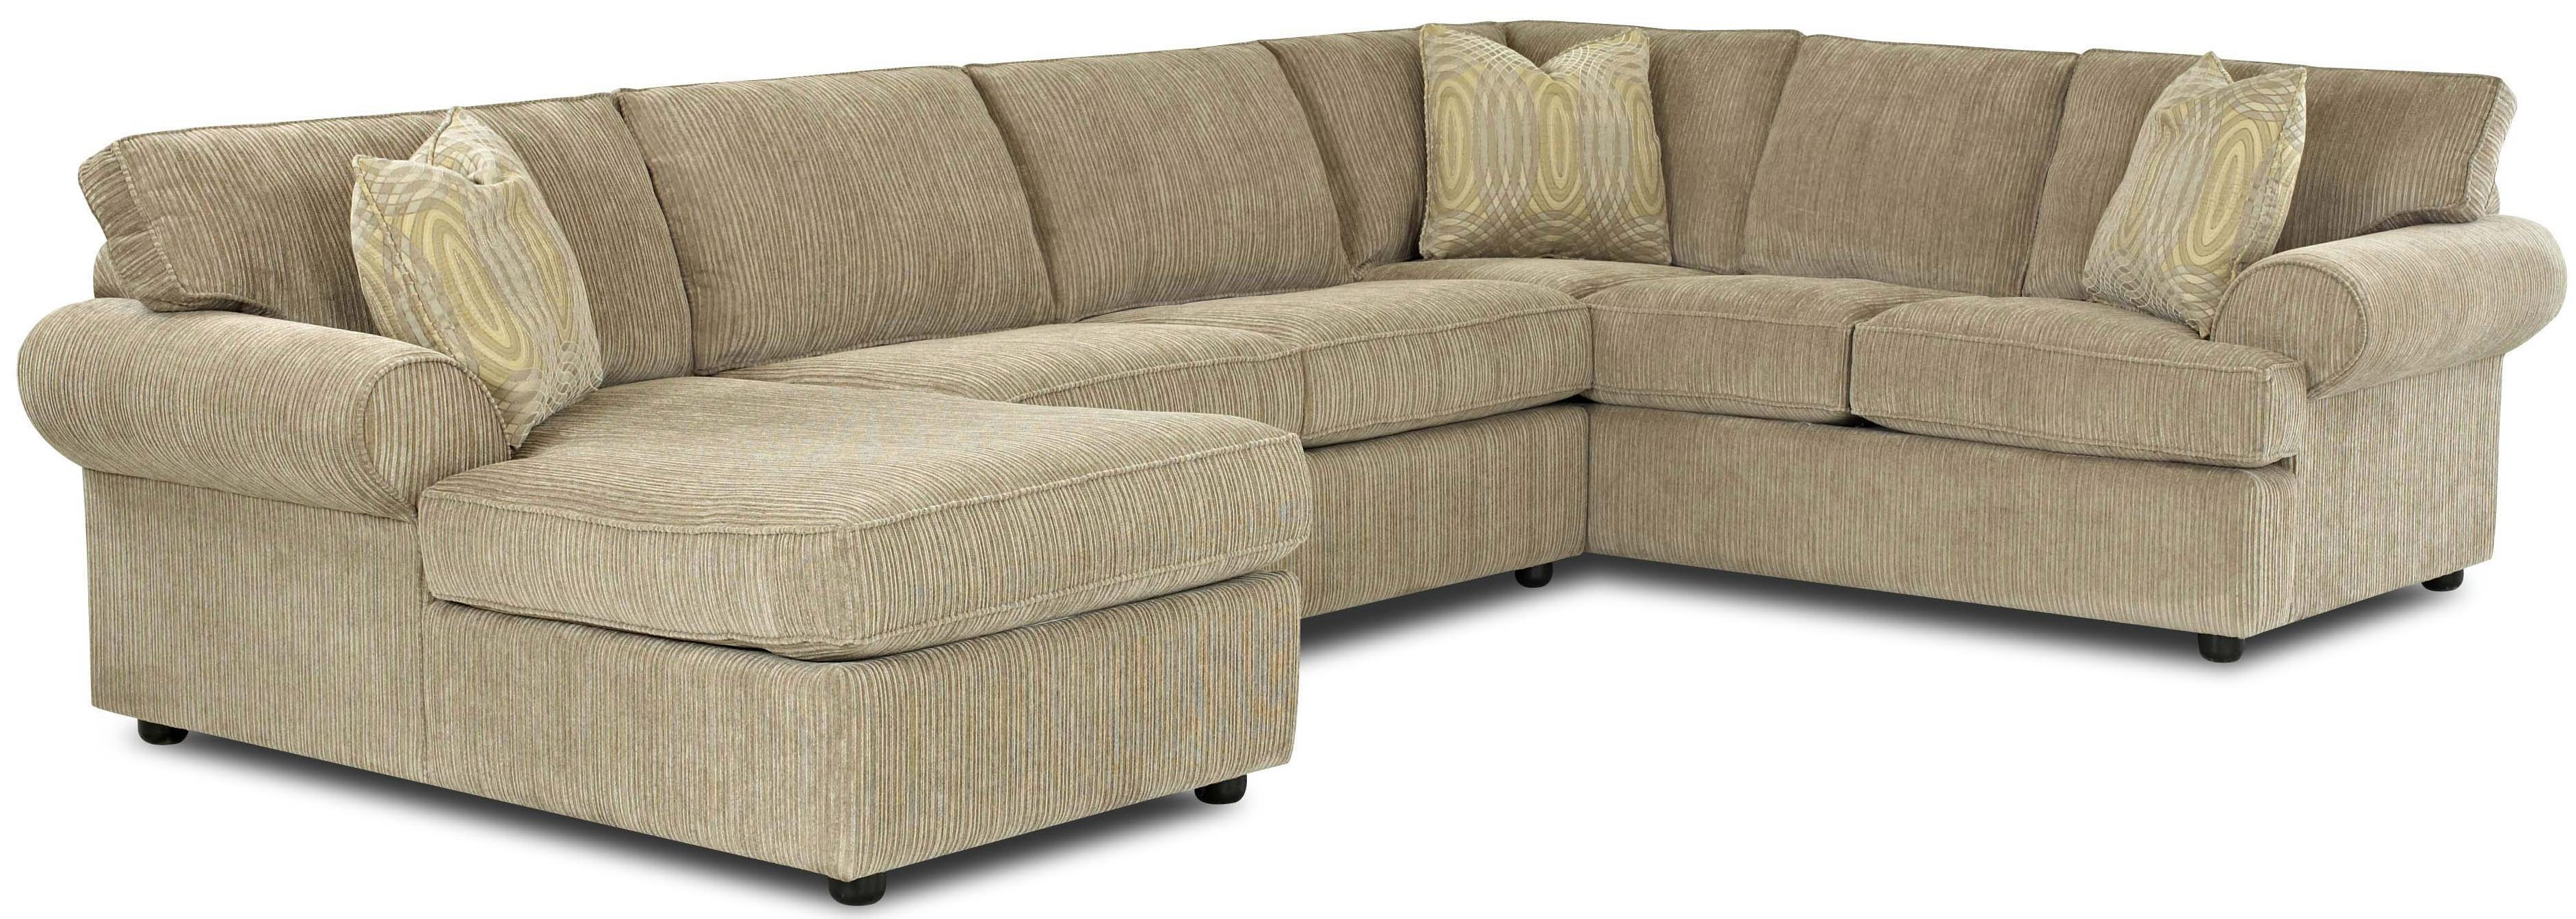 Sofas : Wonderful Sectional Sofas With Recliners Loveseat Sleeper With Regard To Sectional Sofas With Sleeper And Chaise (View 2 of 21)